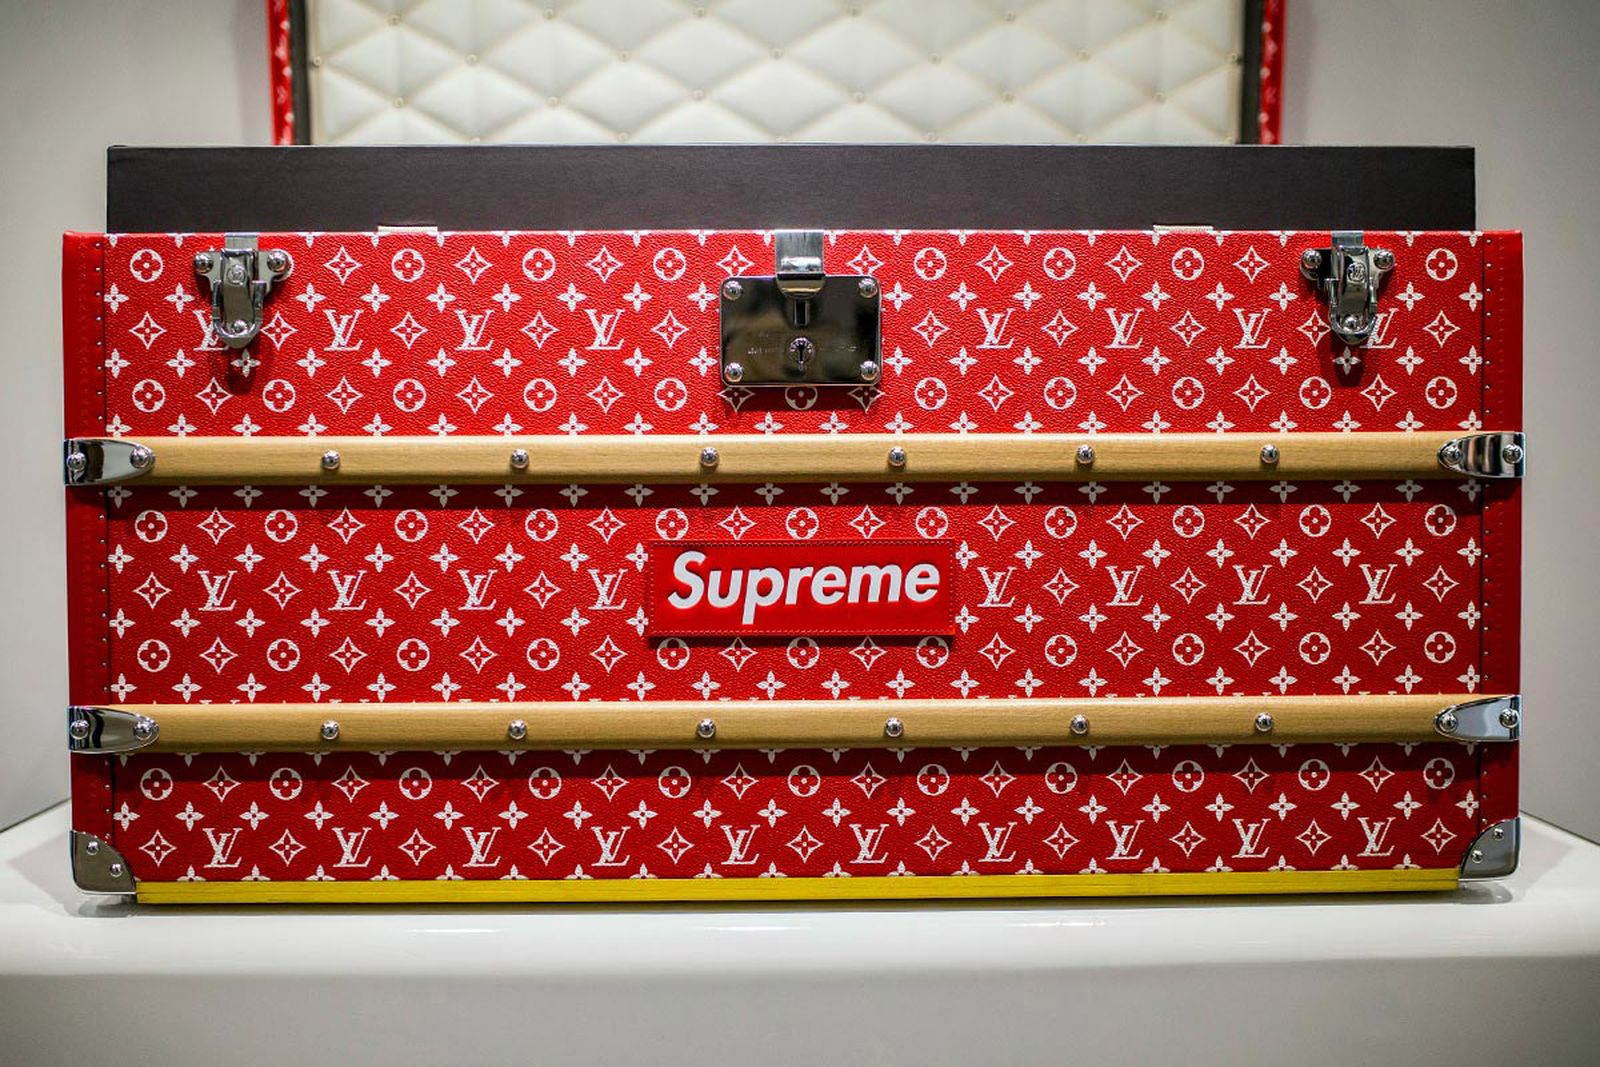 internets-most-searched-questions-about-supreme-02